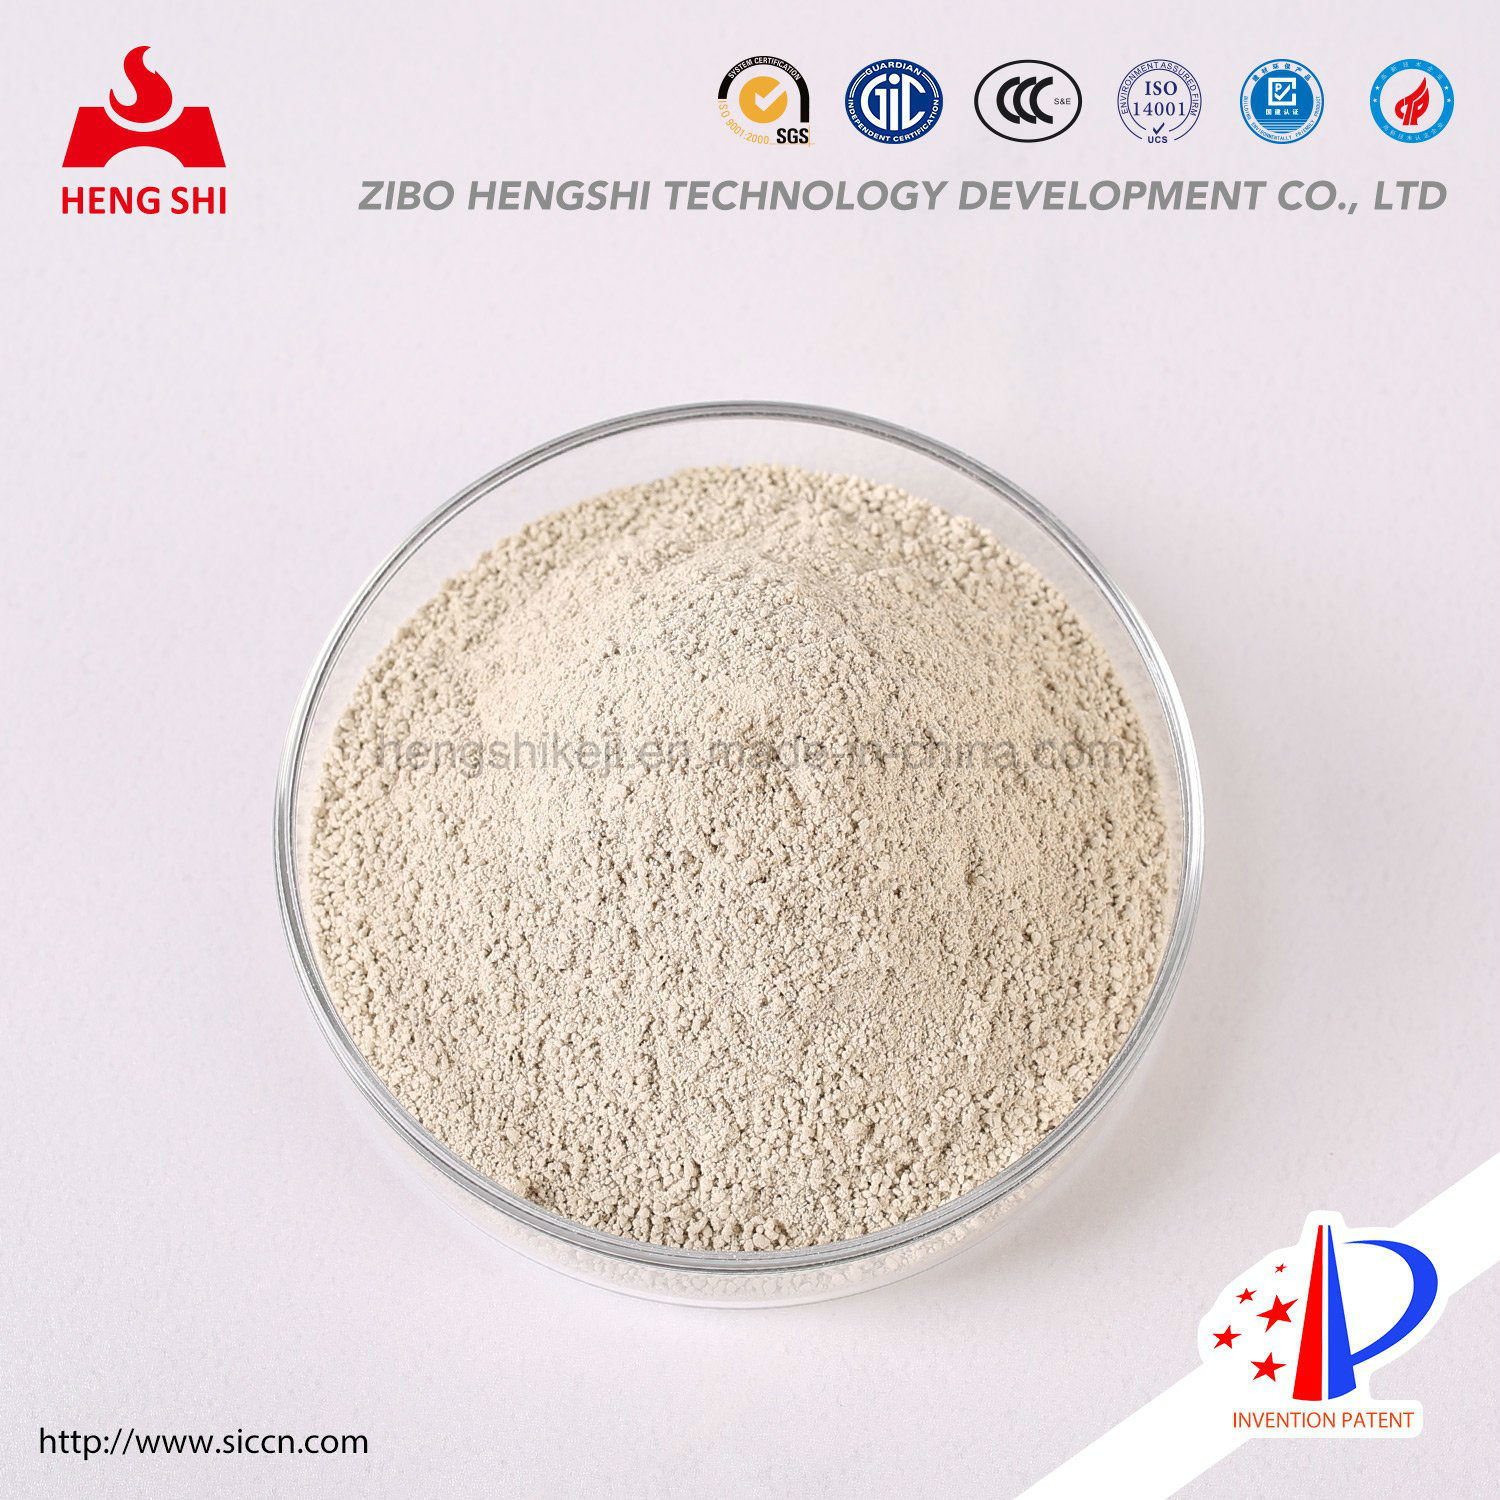 High Quality New-Type Chemical Material Si3n4 Silicon Nitride Powder for Photovoltaic Coating